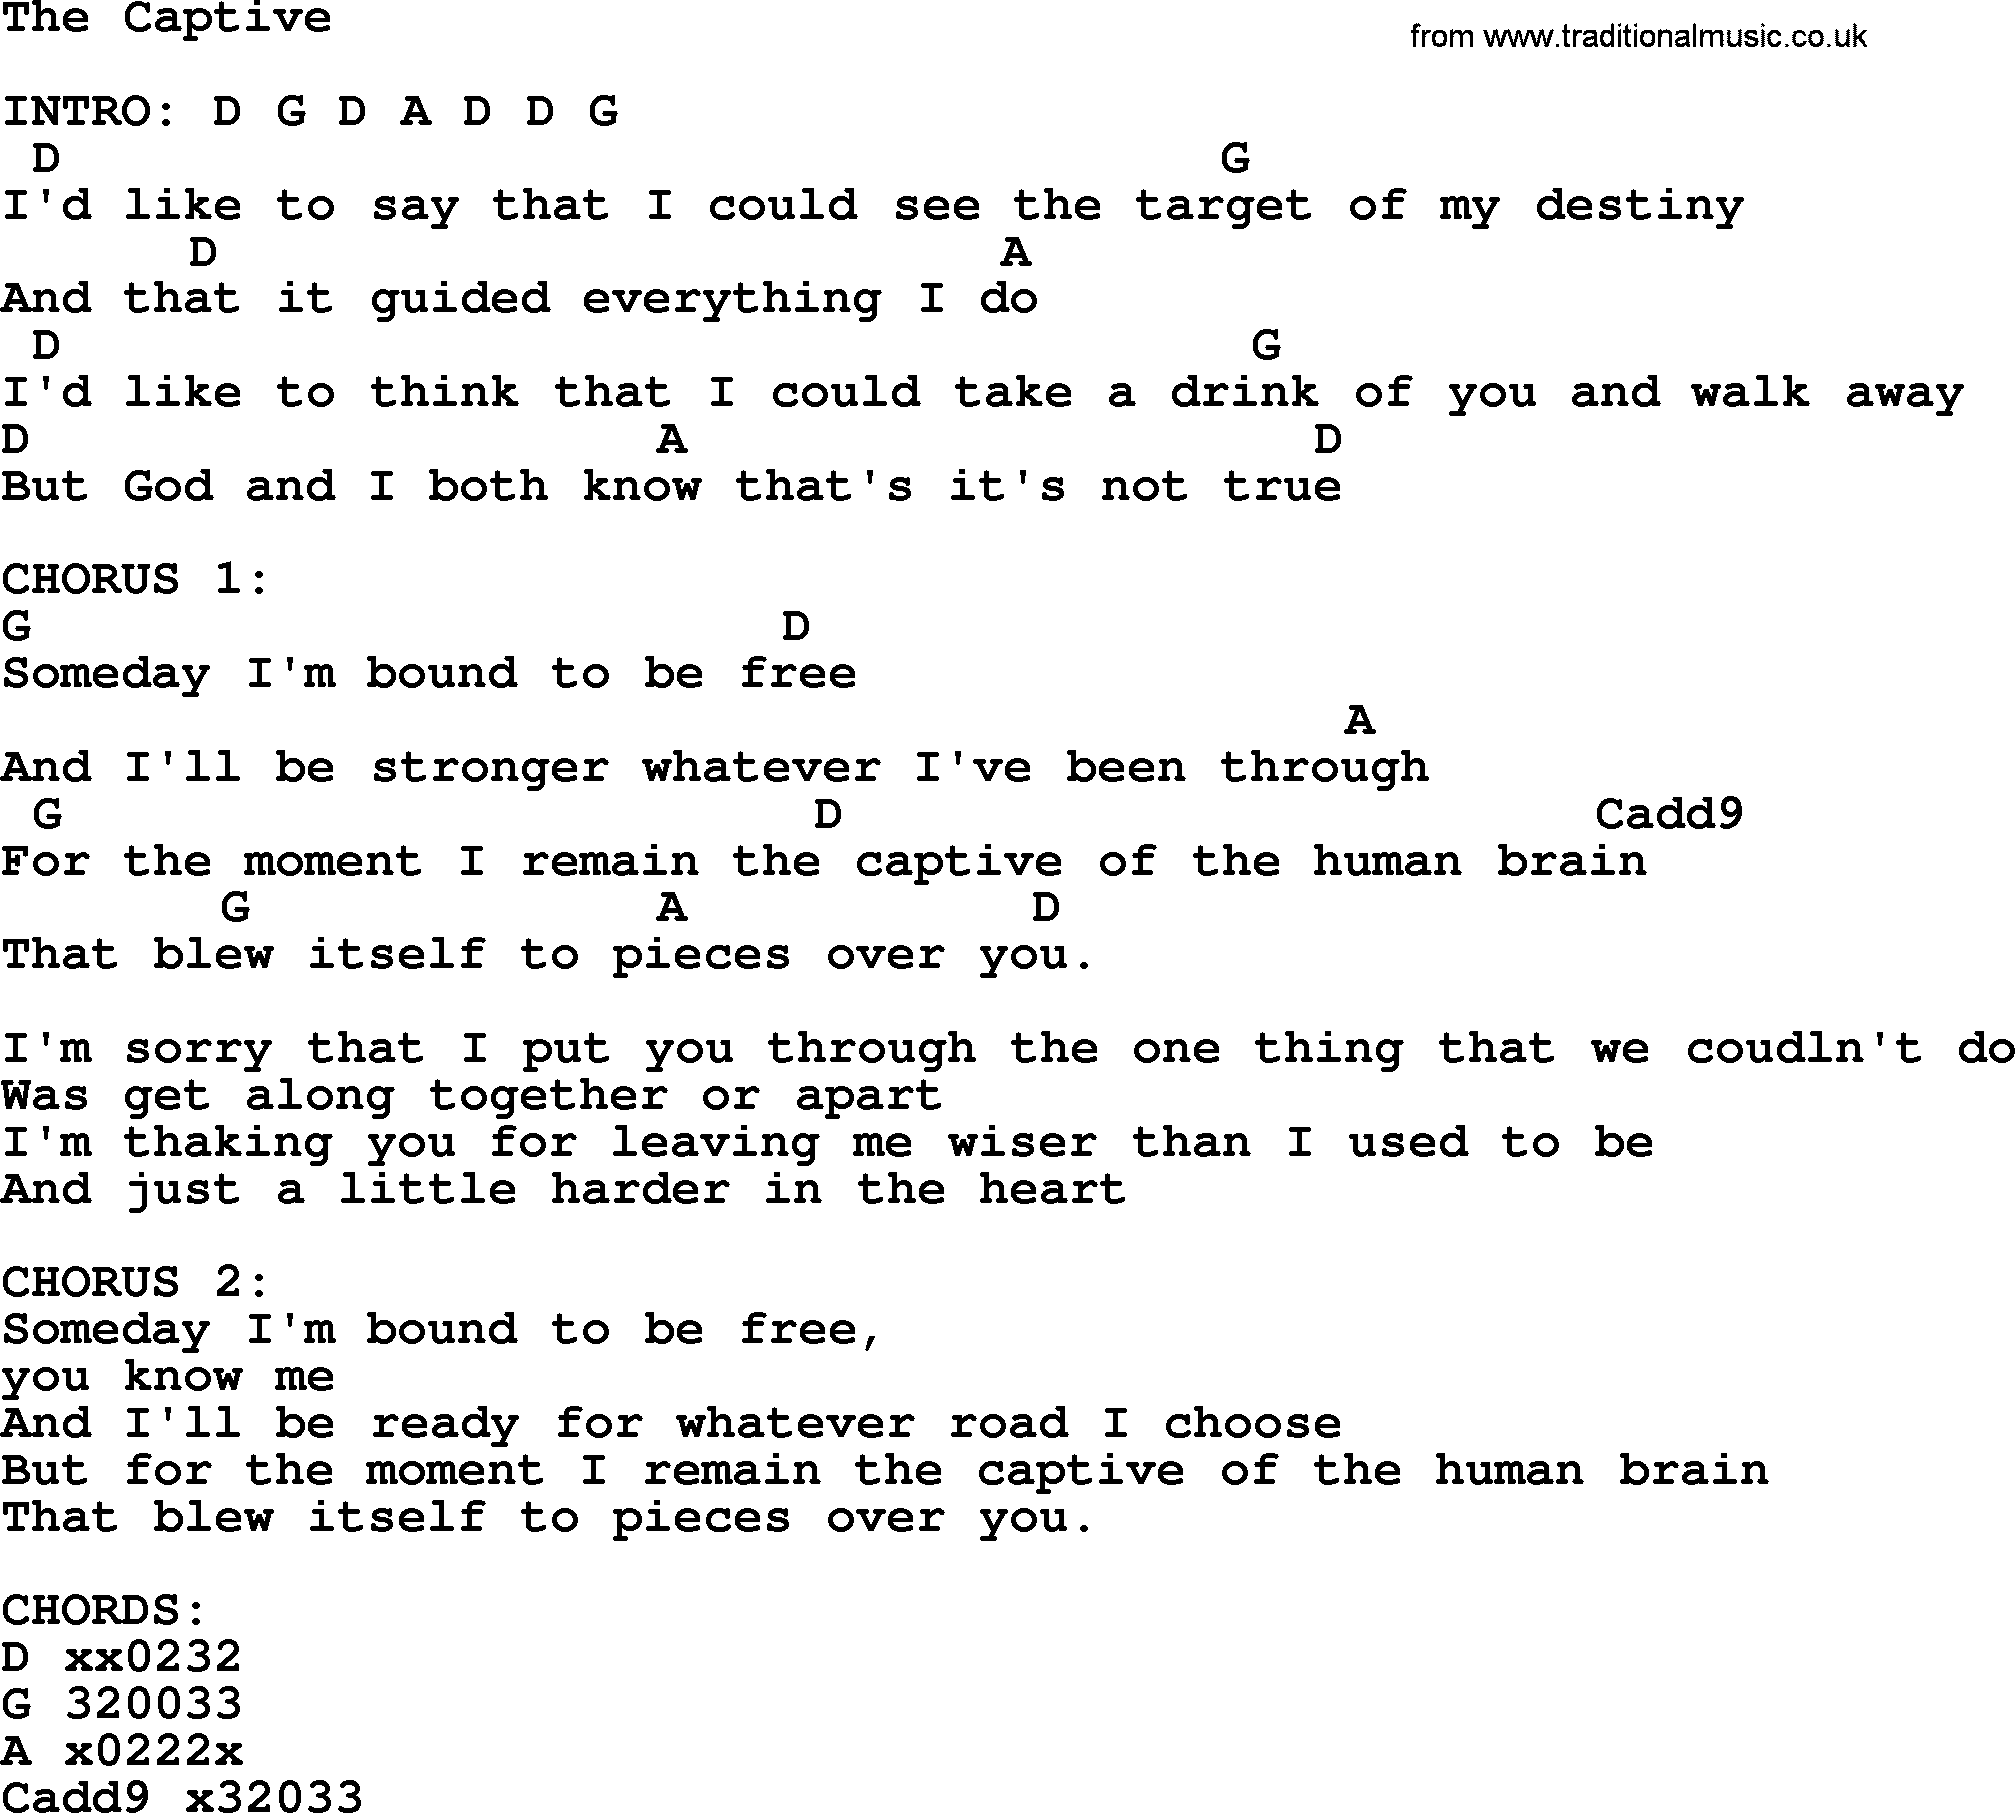 Kris Kristofferson Song The Captive Lyrics And Chords